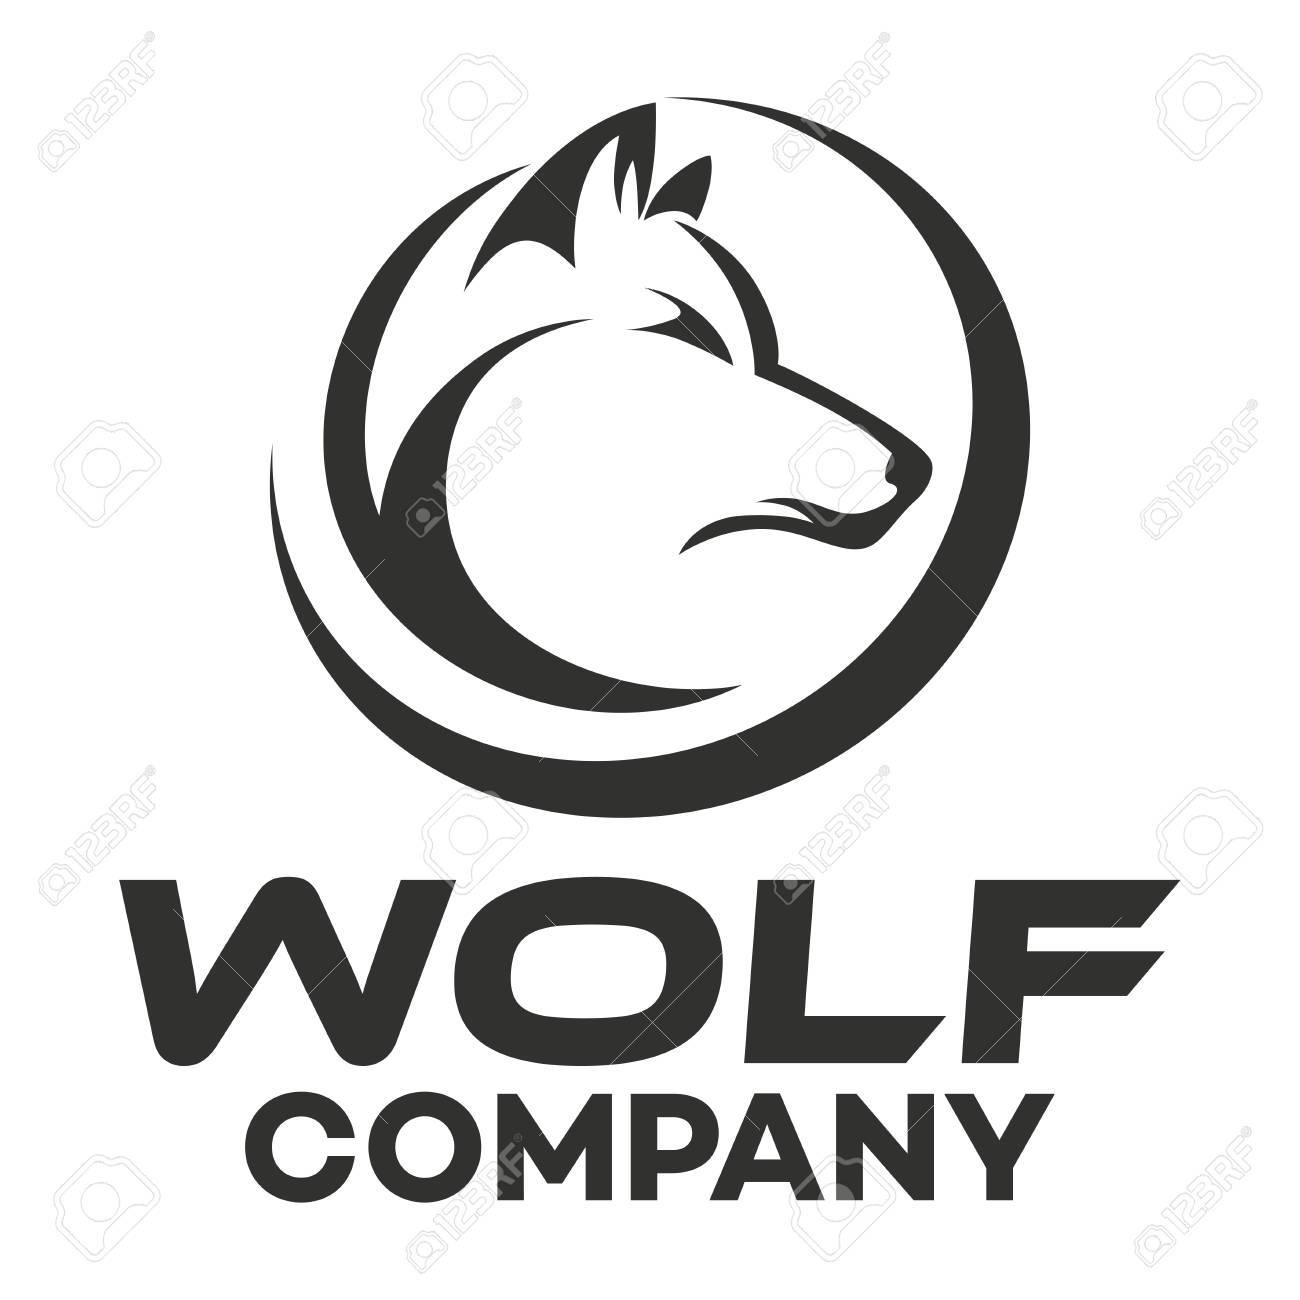 Wolf Icon Royalty Free Cliparts Vectors And Stock Illustration Image 74000630 Download icons in all formats or edit them for your designs. wolf icon